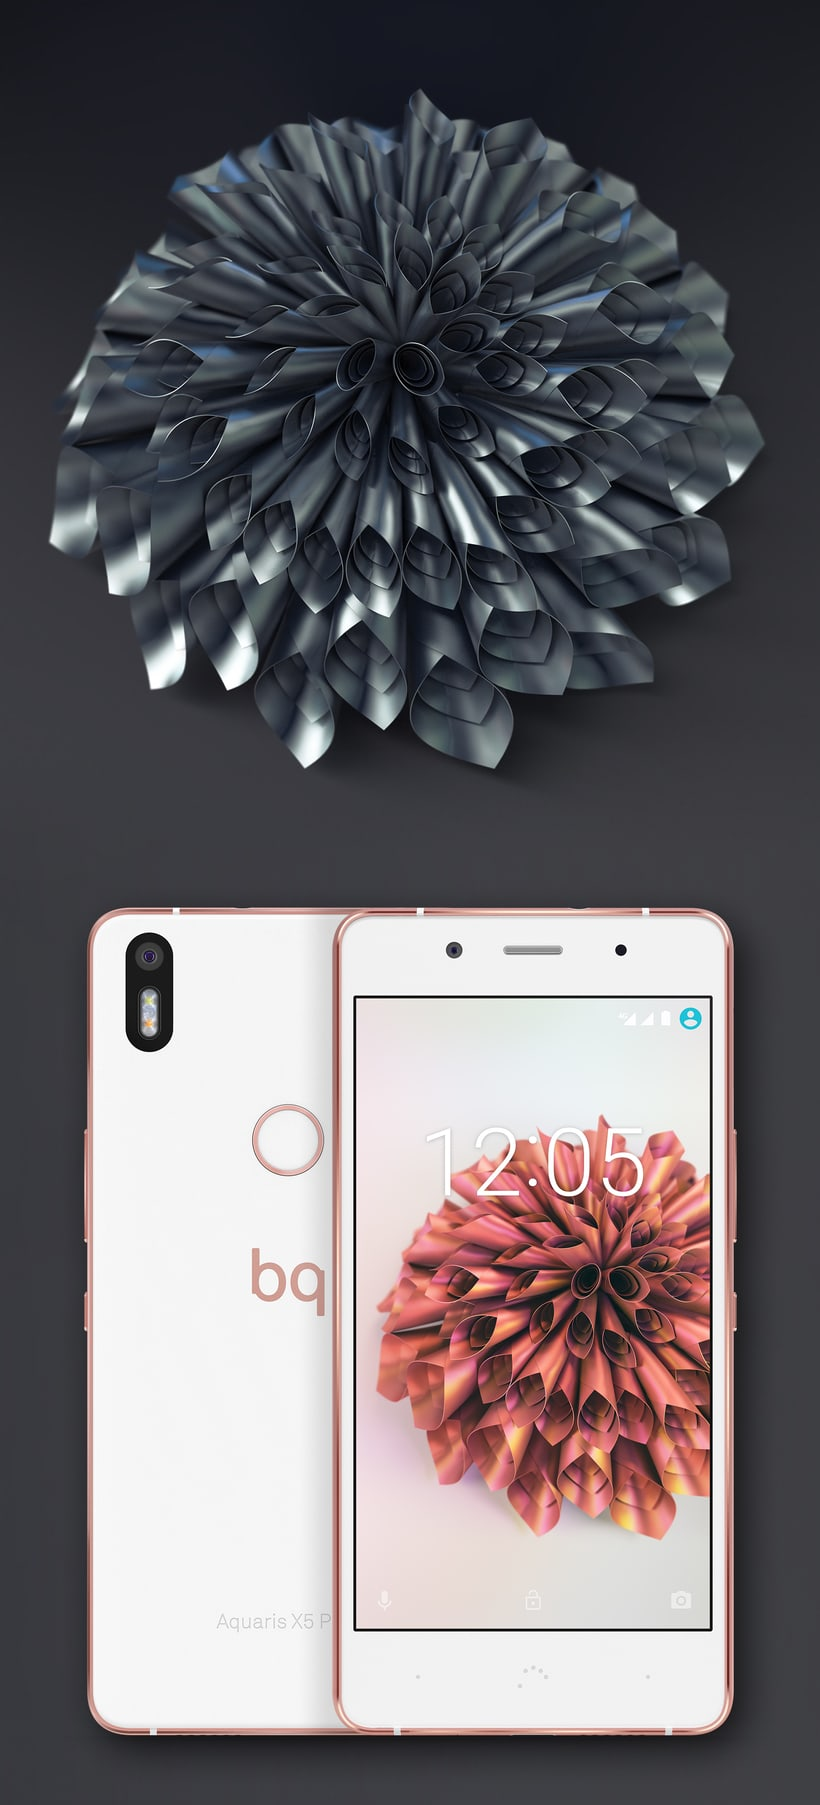 Official wallpapers for bq Aquaris X5 plus 5